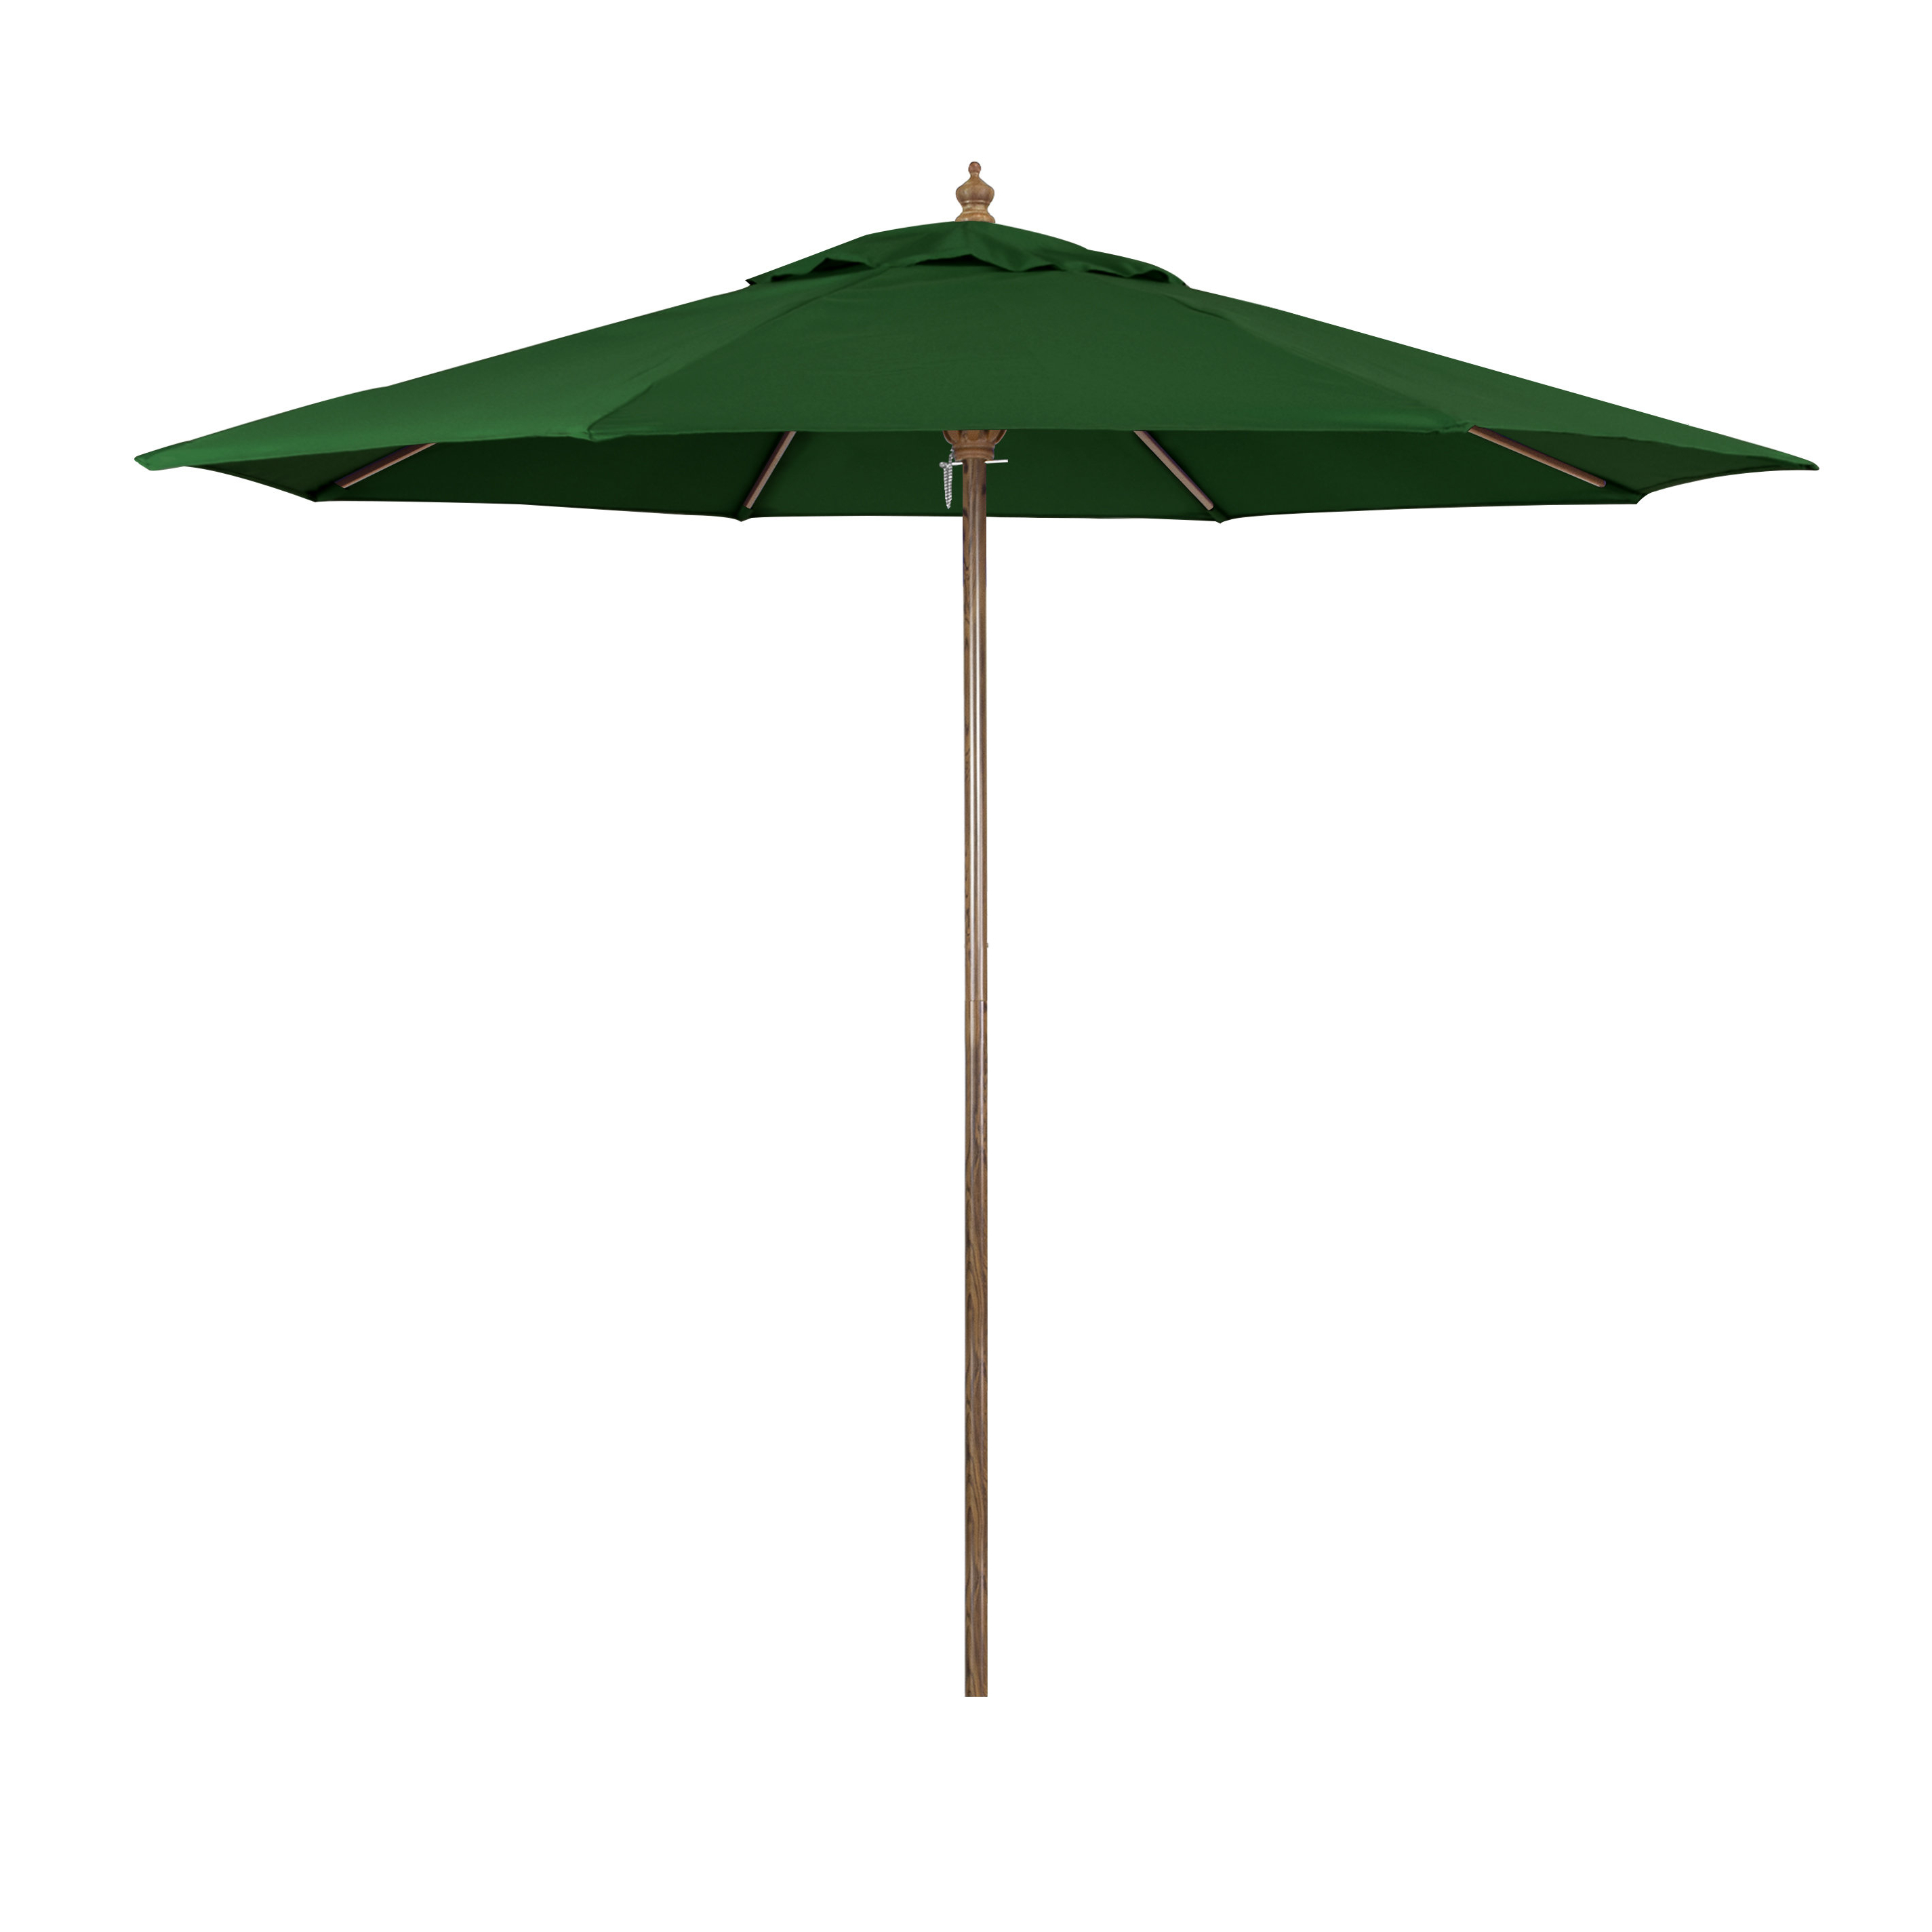 Ryant Cantilever Umbrellas Regarding Preferred Ryant 9' Market Umbrella (Gallery 20 of 20)